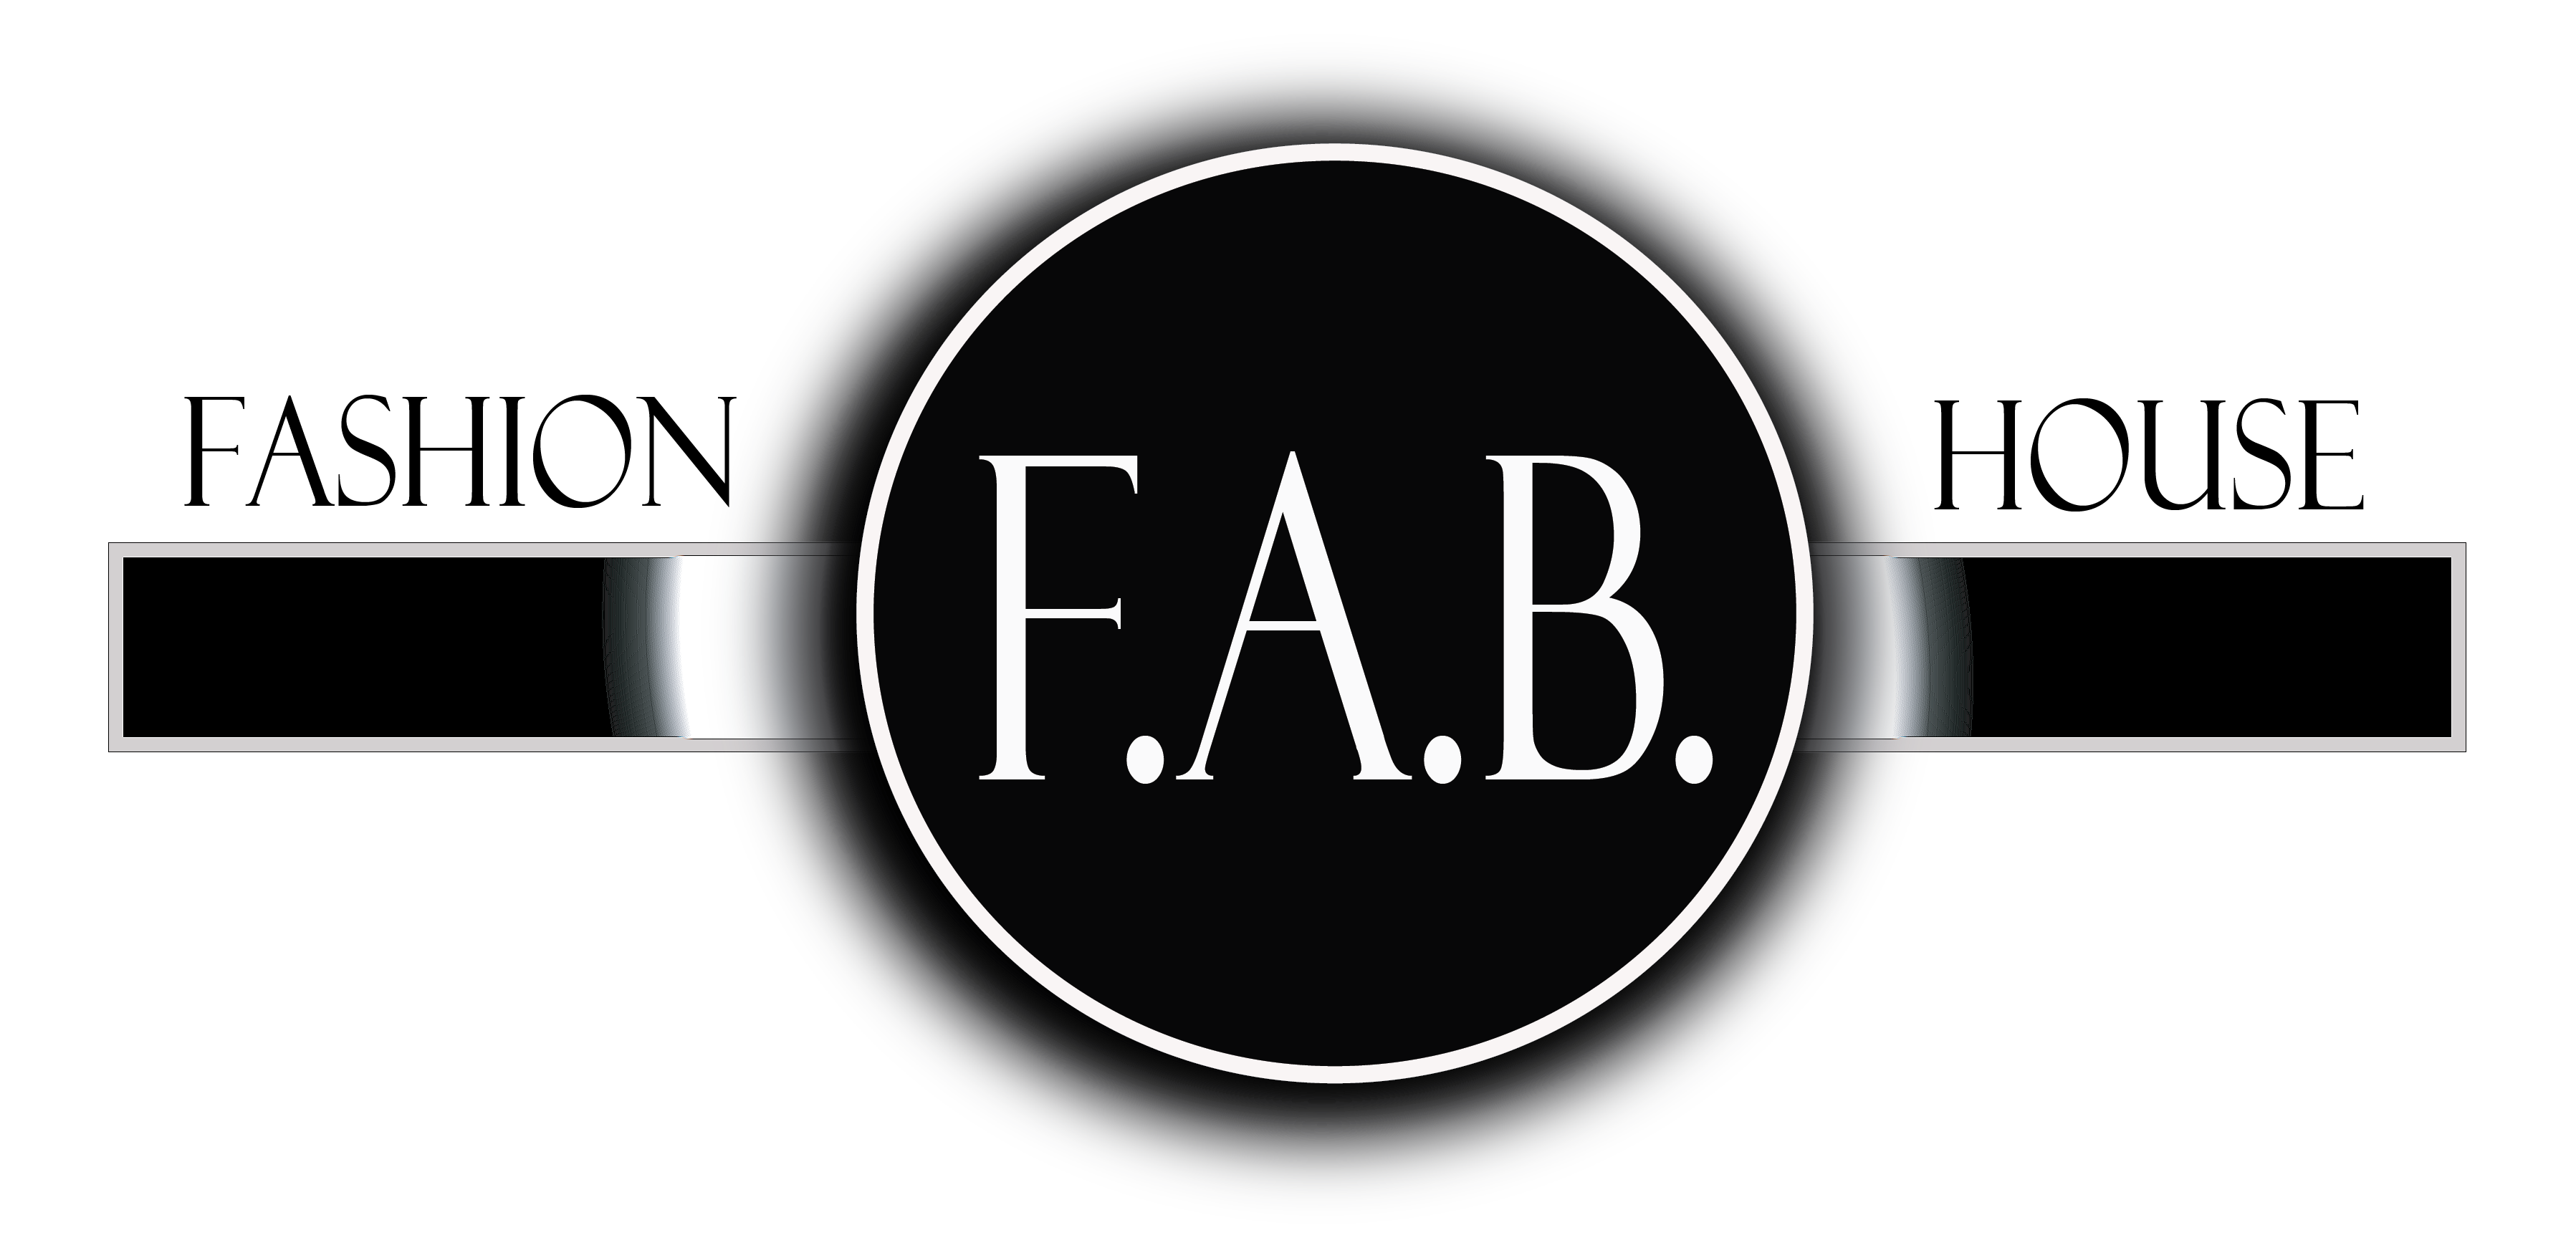 Fashion House of F.A.B